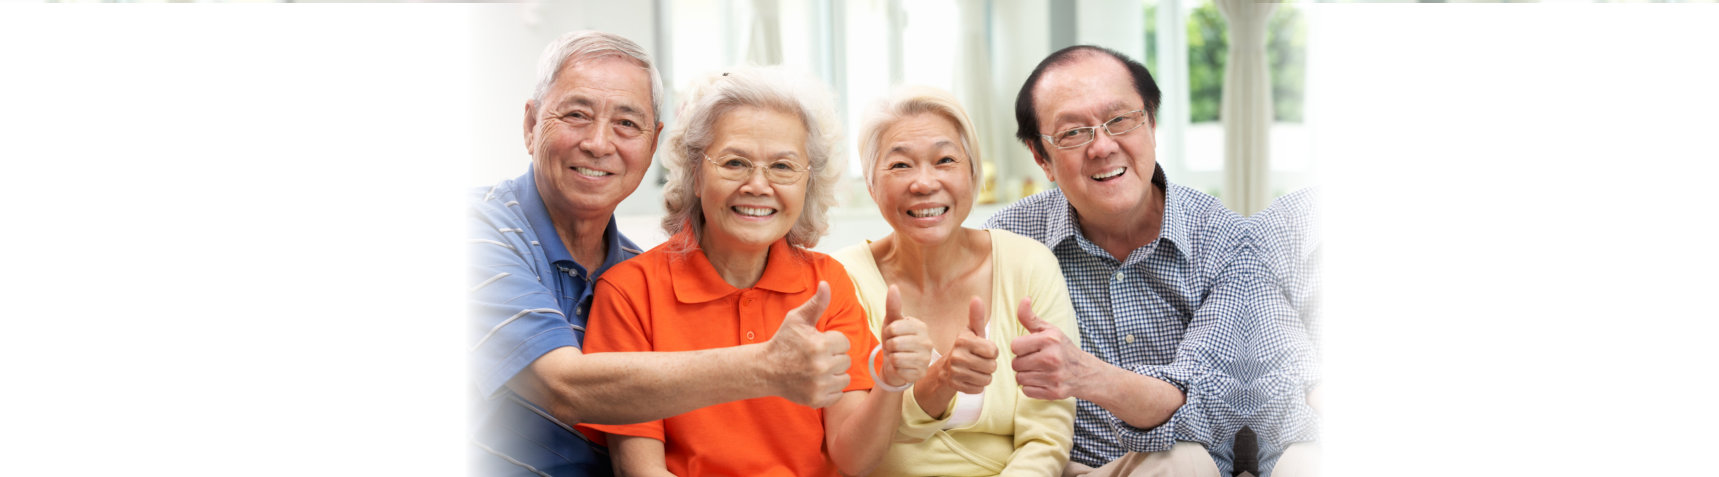 old people doing thumbs up